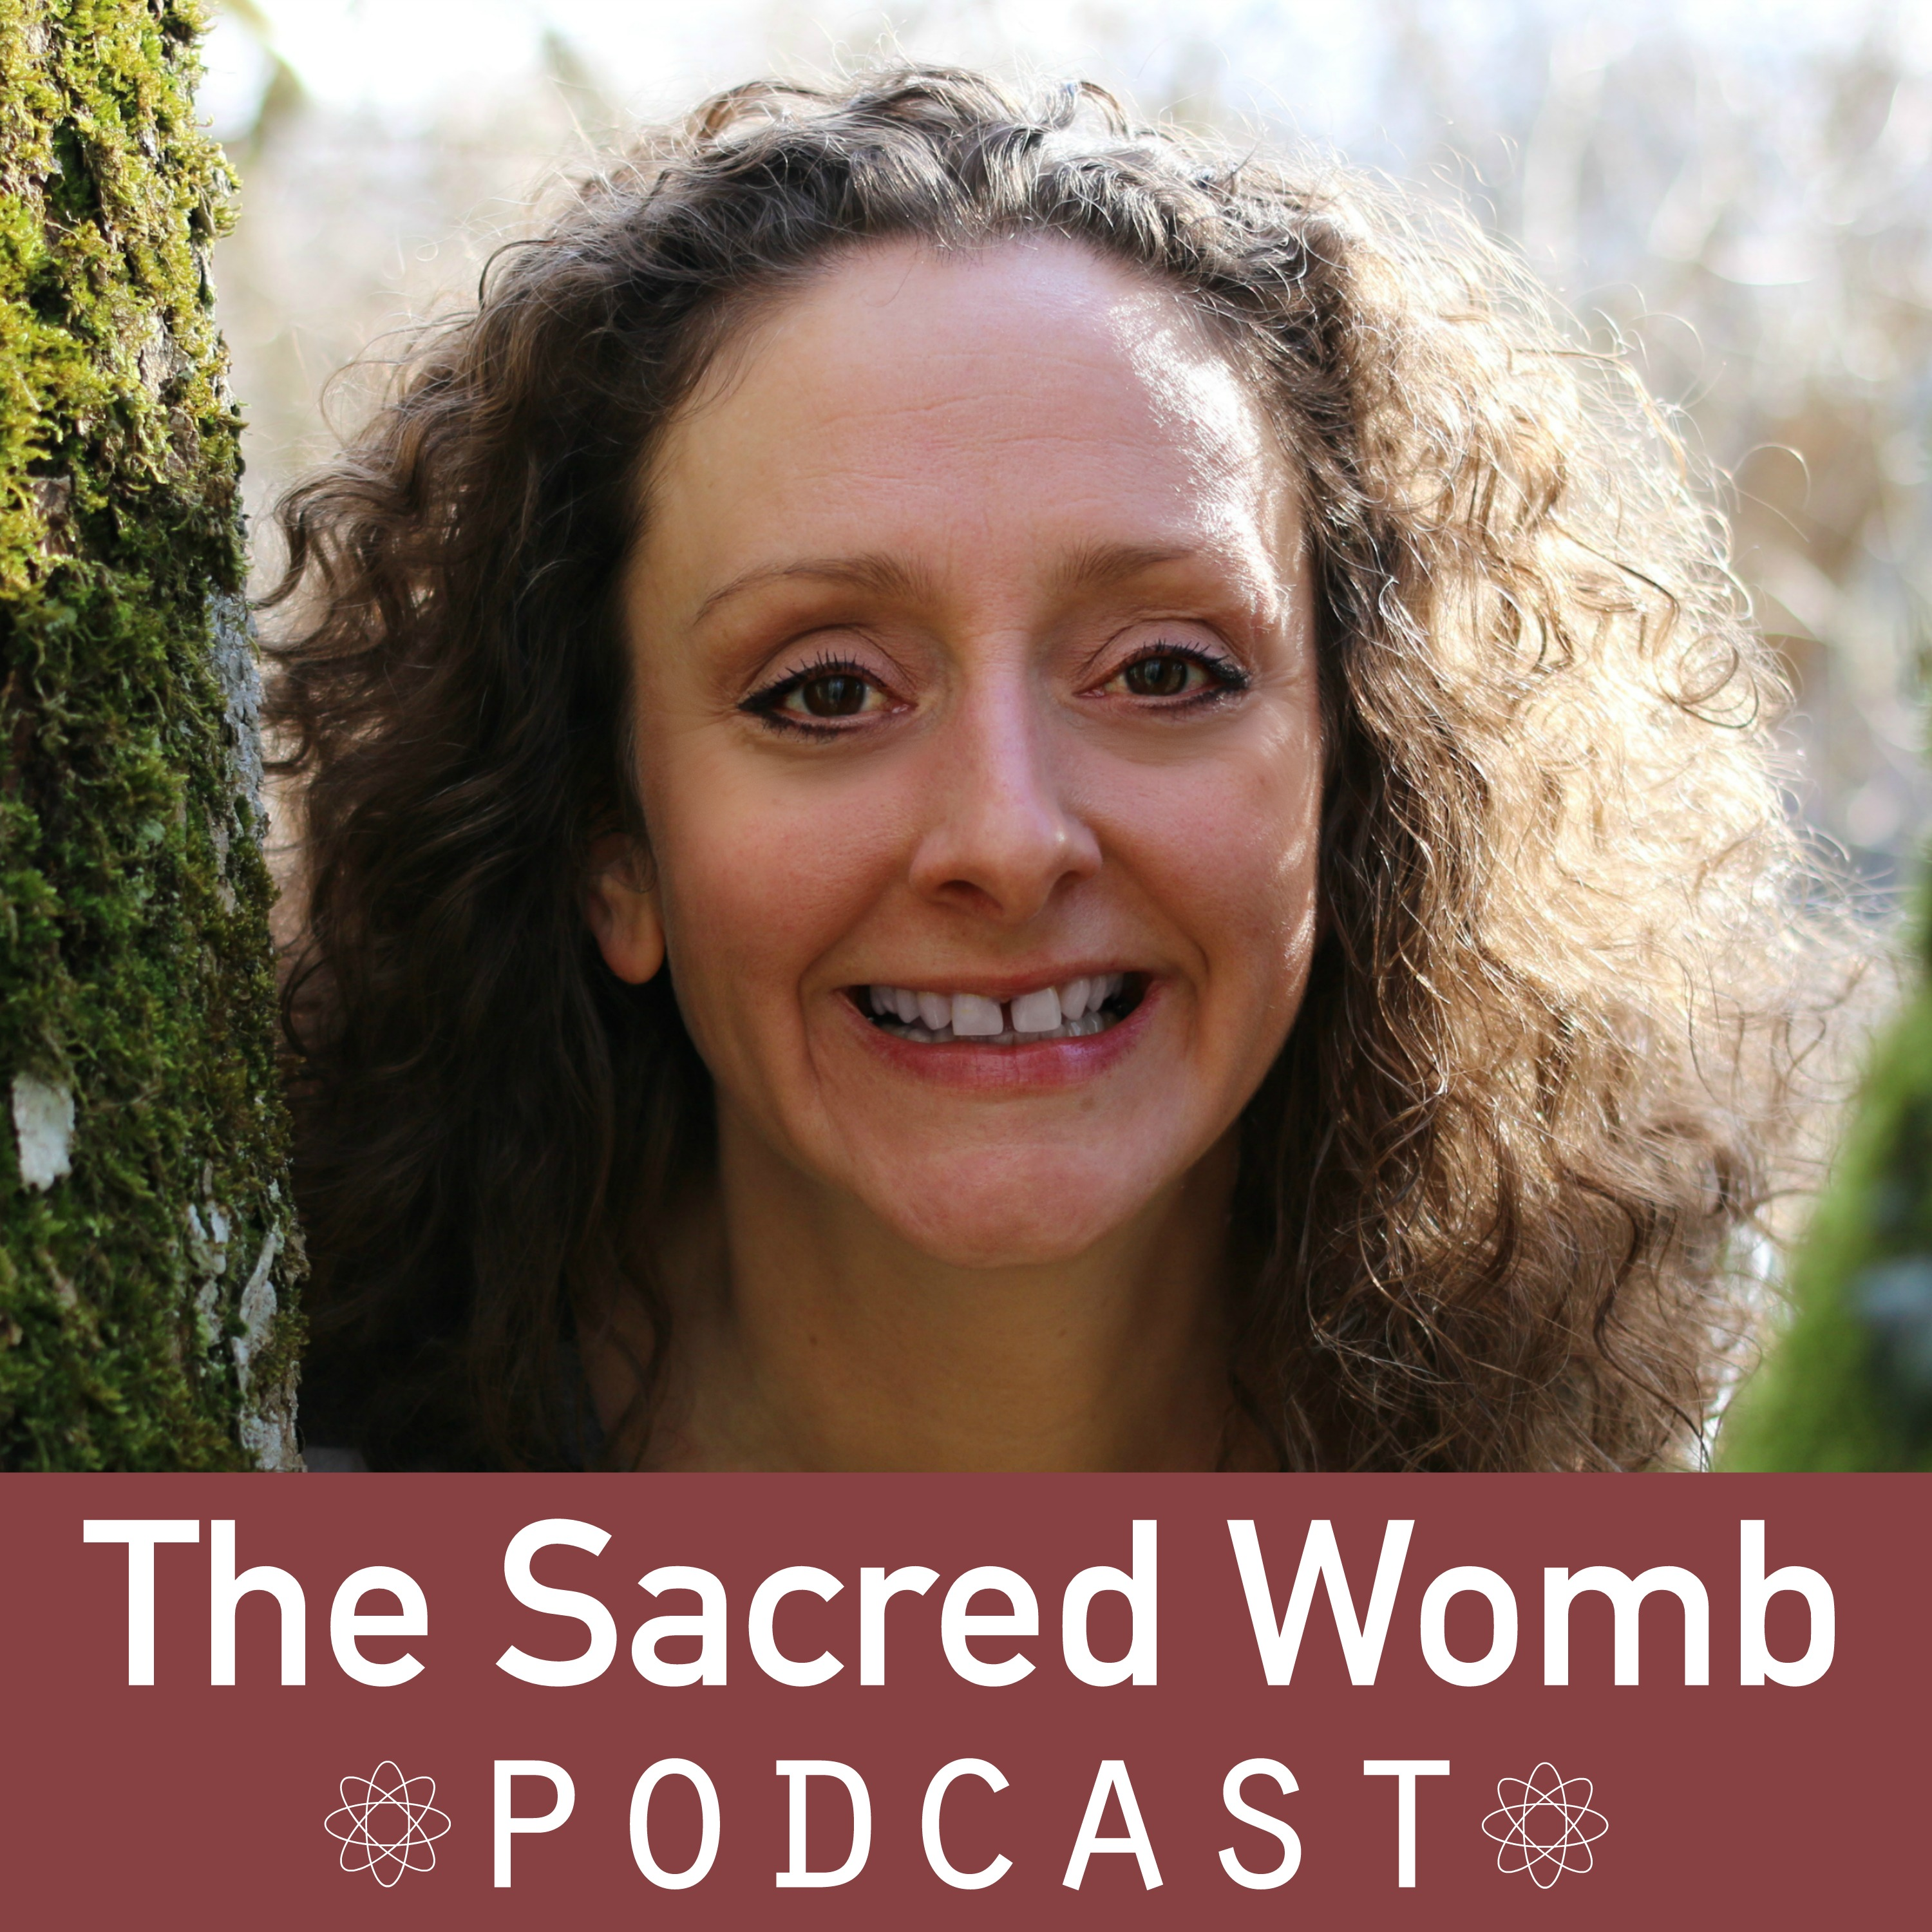 The Sacred Womb - How to use your menstrual cycle as a natural spiritual pathway encoded within the body.